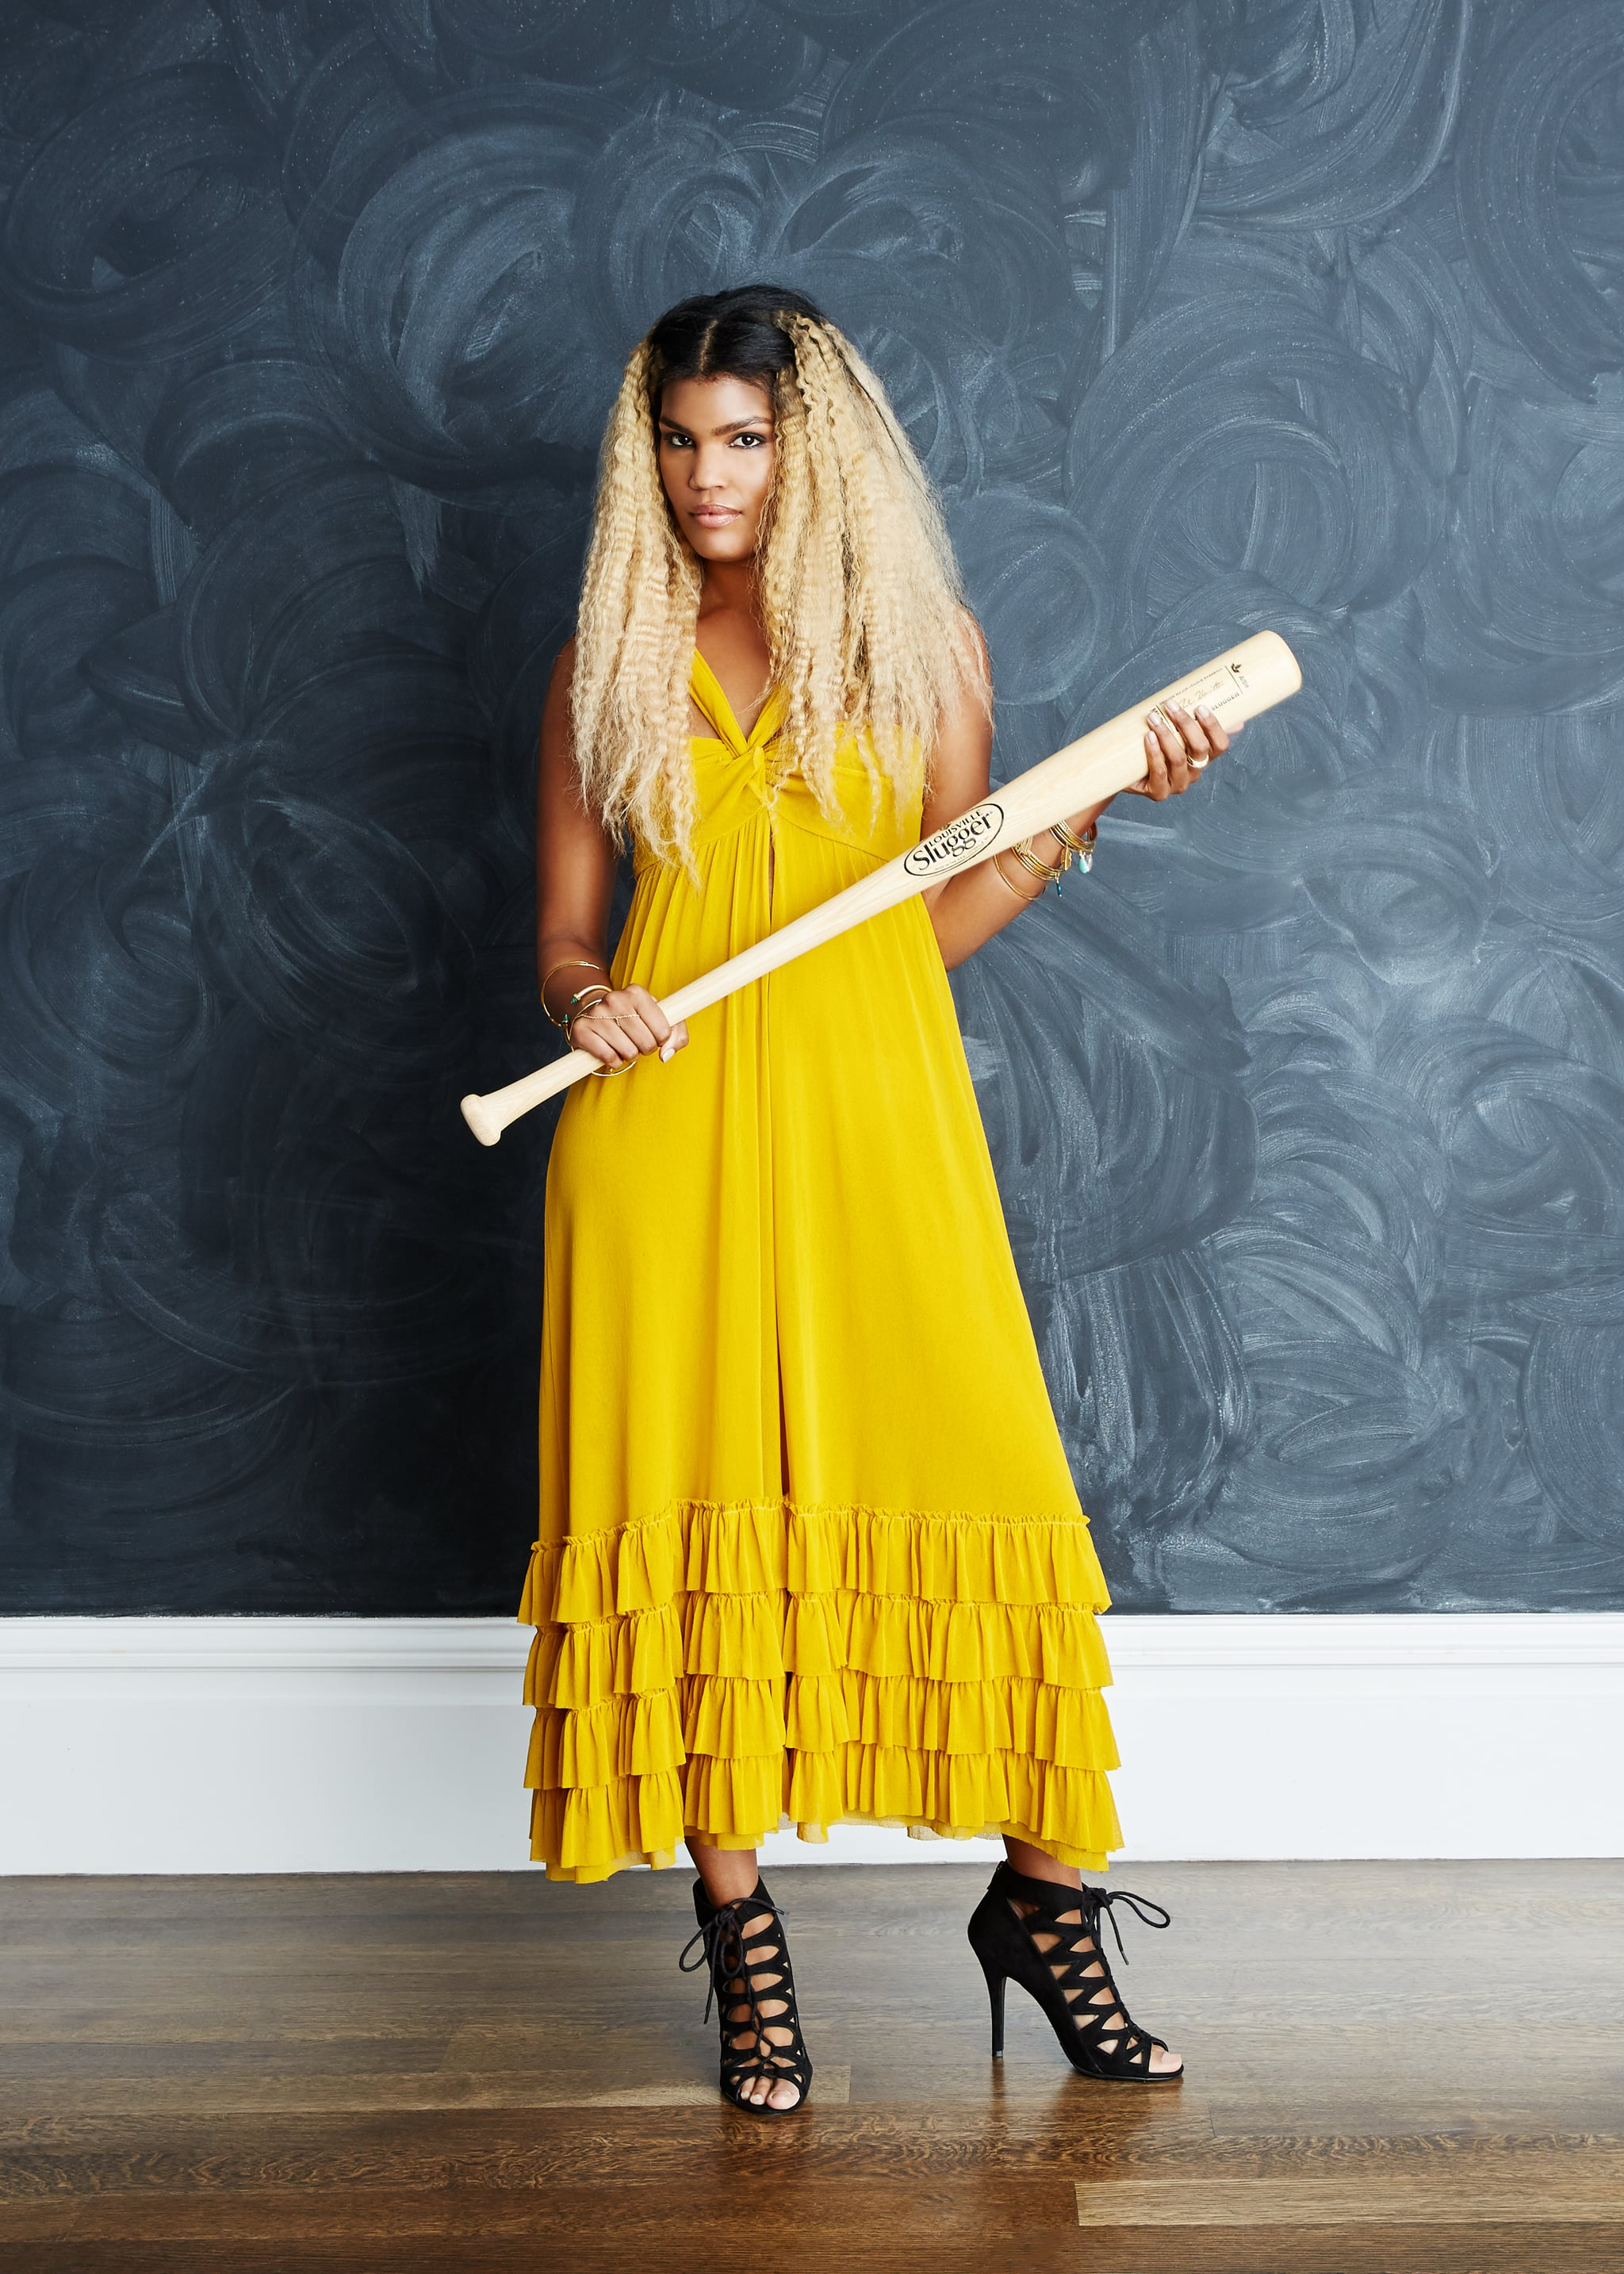 Beyonce Lemonade Halloween Costume | POPSUGAR Australia Smart Living